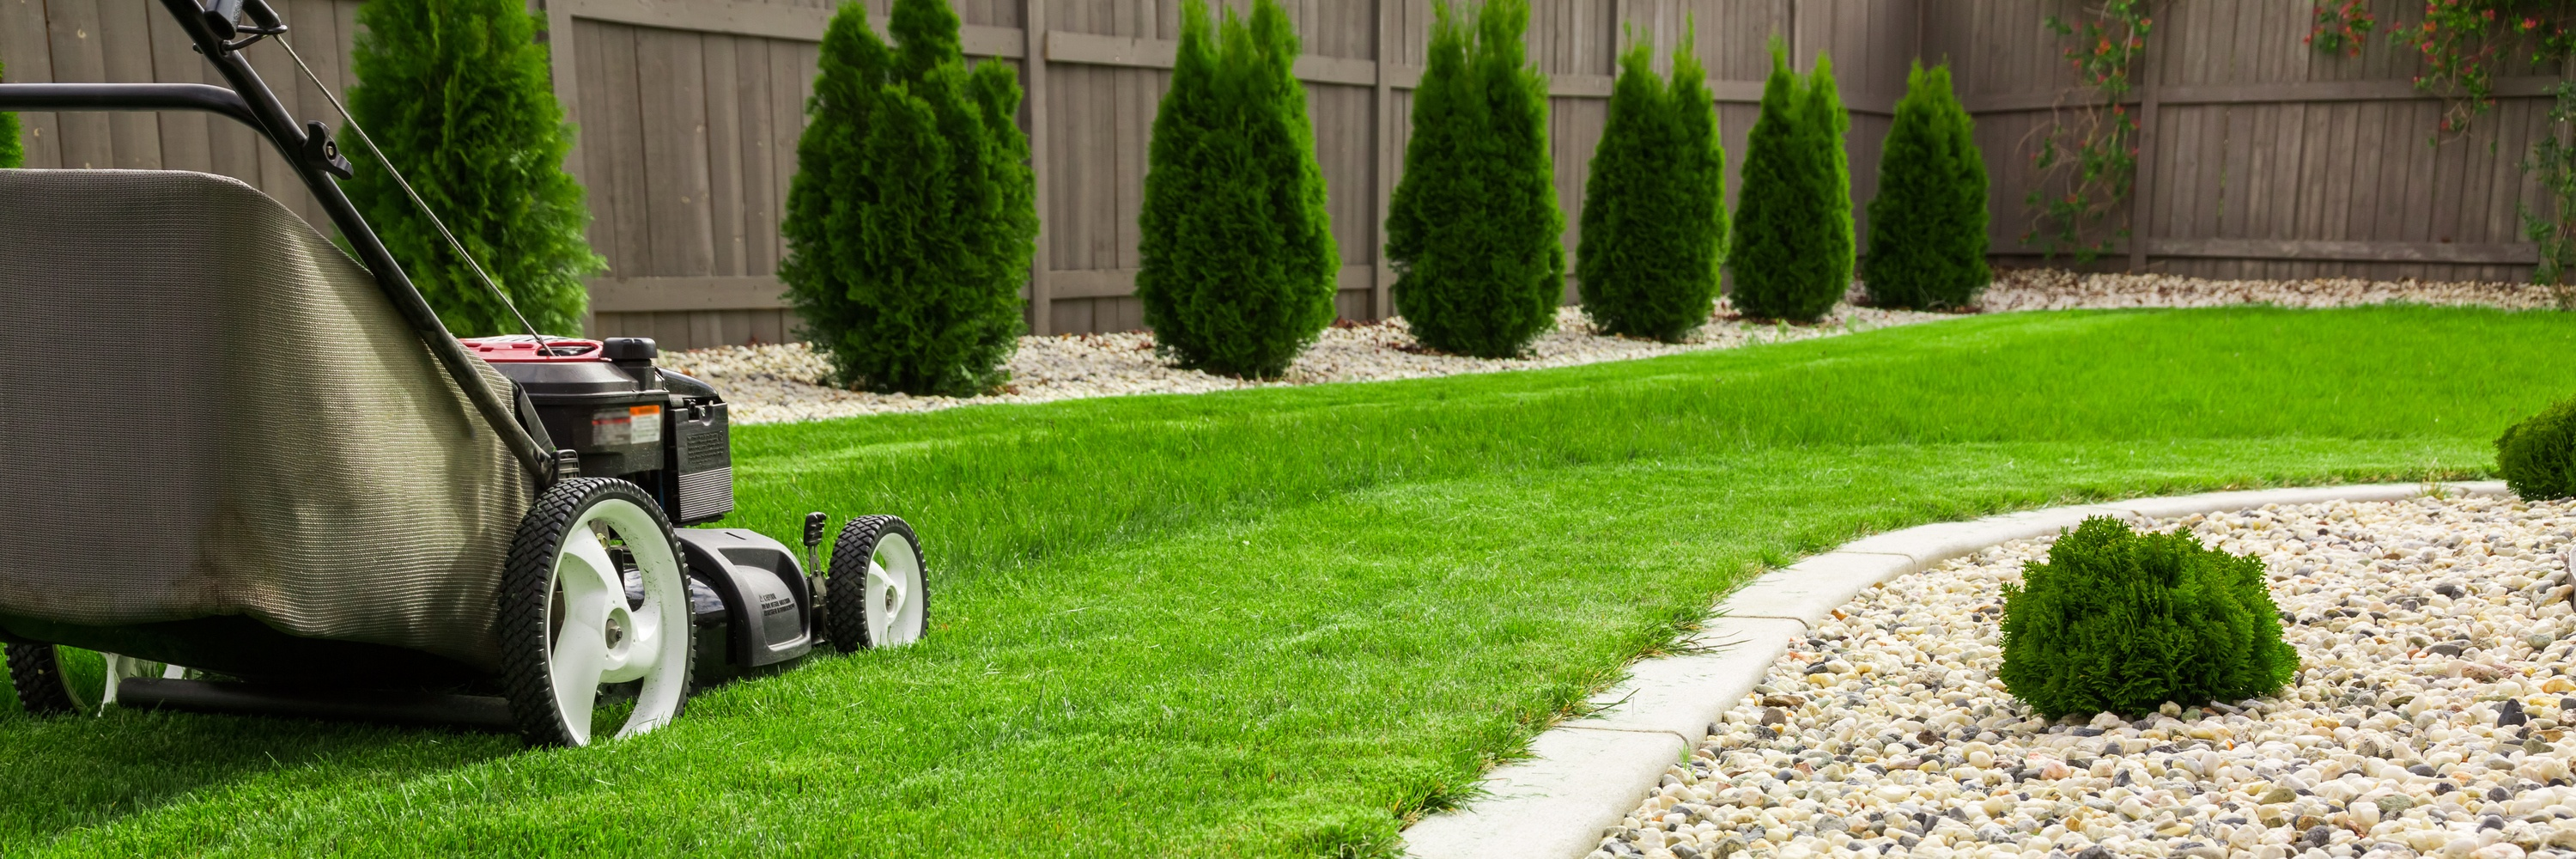 Spring-Lawn-Care-Crab-Grass-Preventer.jpg